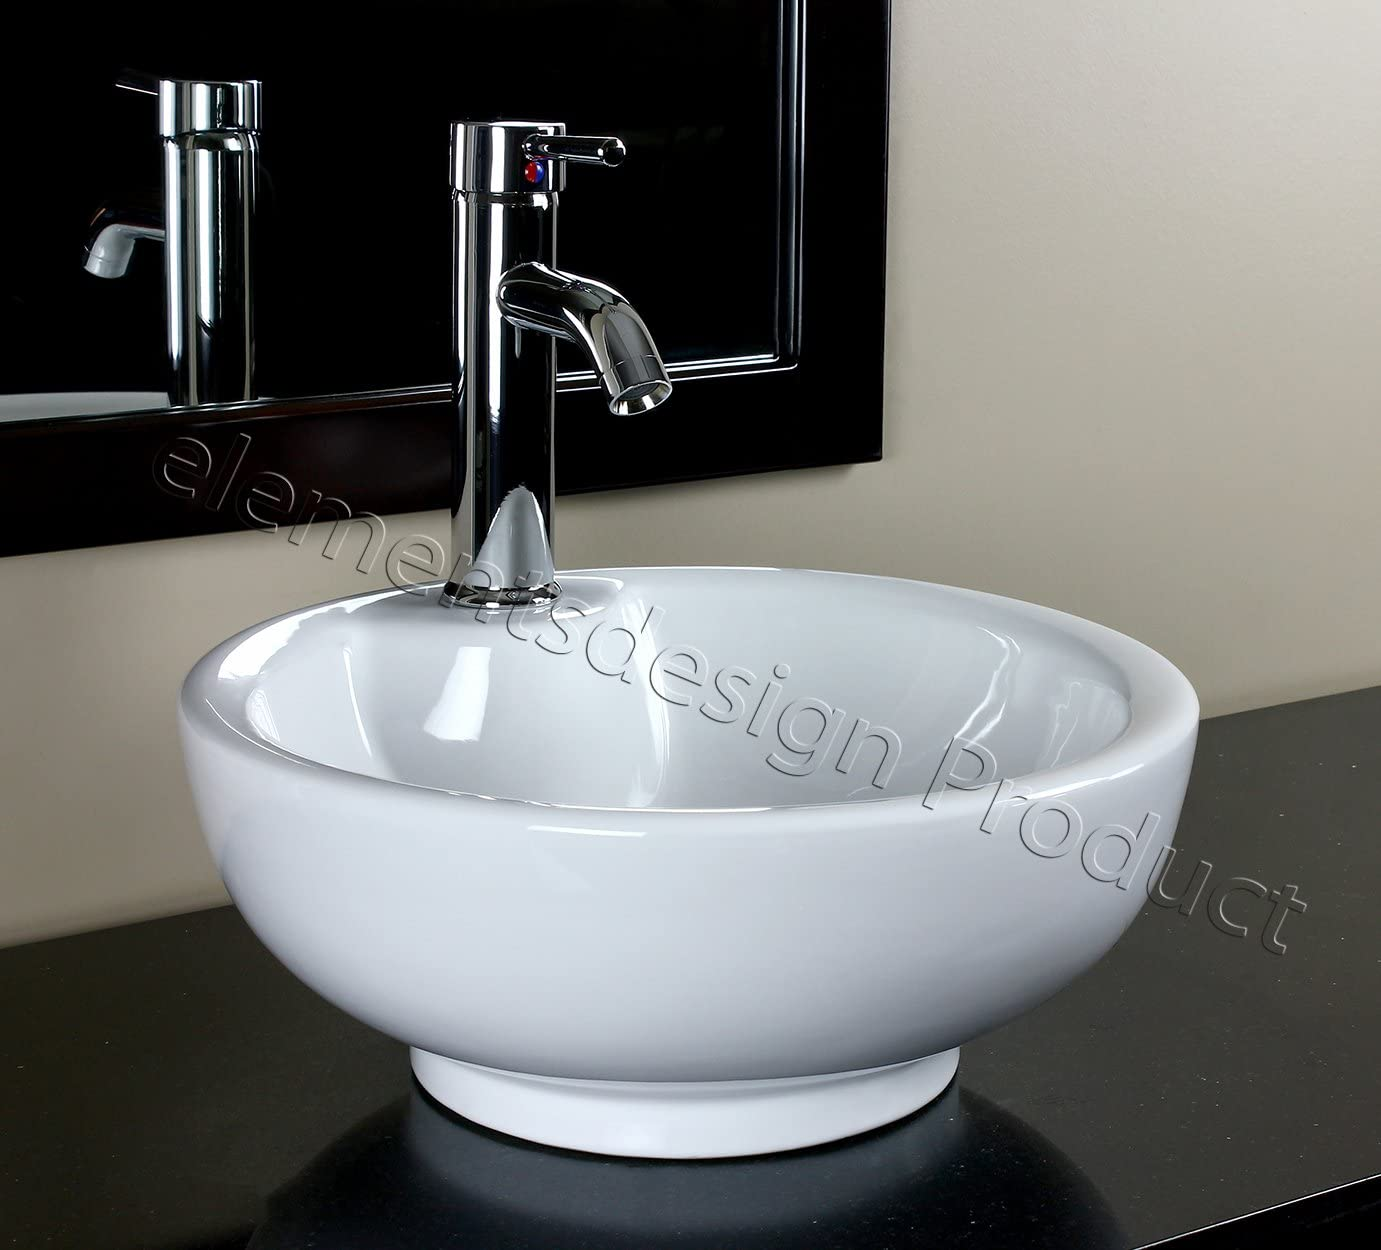 Bathroom Ceramic Porcelain Vessel Sink CV30C5 Chrome faucet and Drain